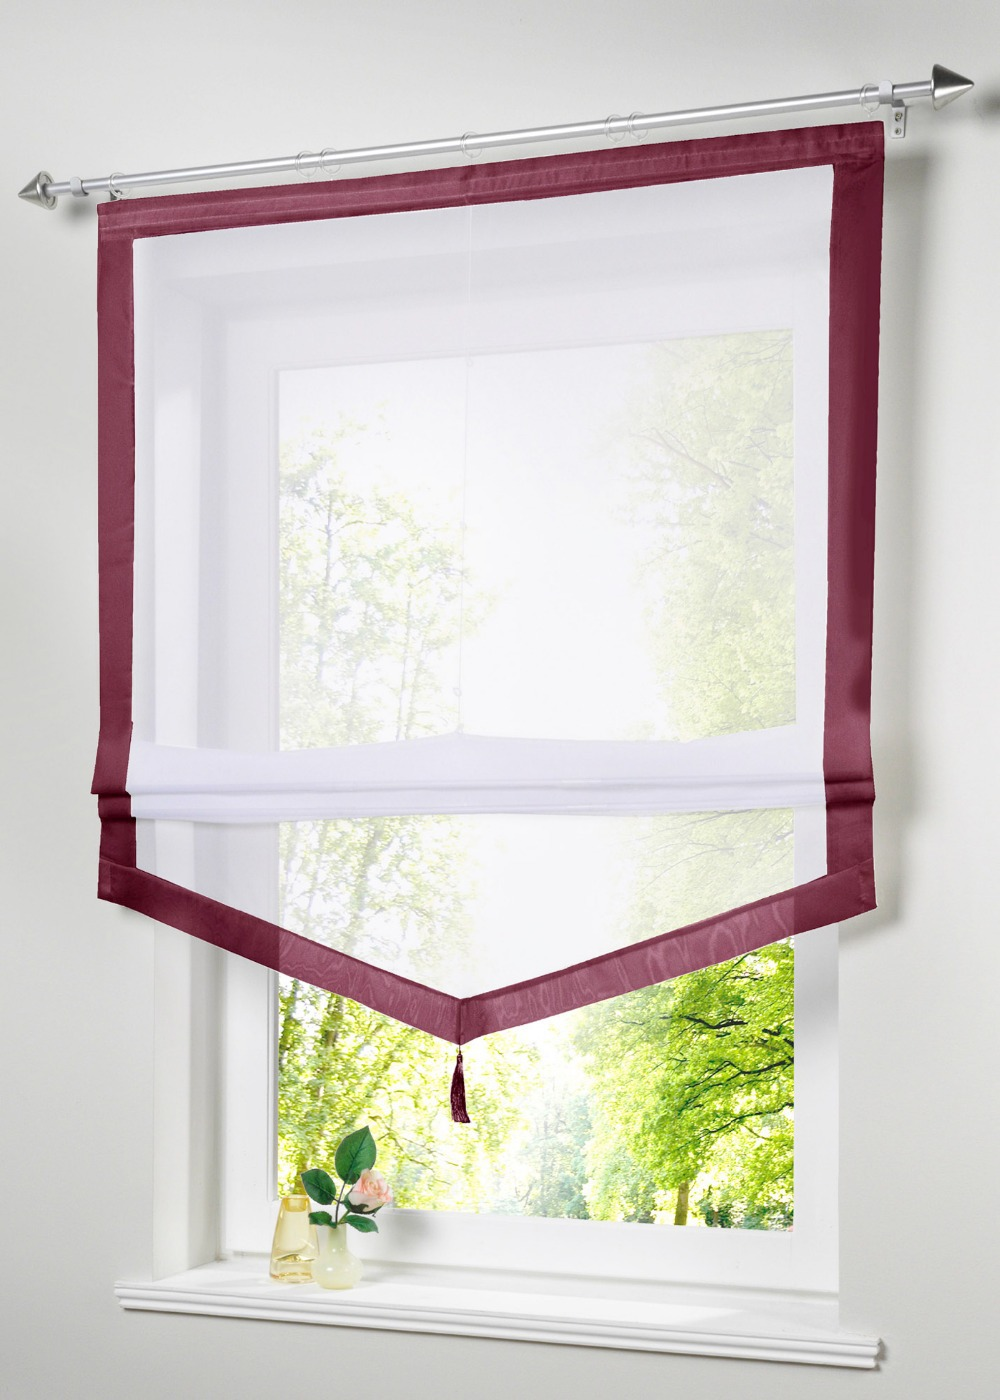 new-uk-popular-stitching-colors-kitchen-balcony-voile-blinds-sheer-organza-roman-curtain-1pc